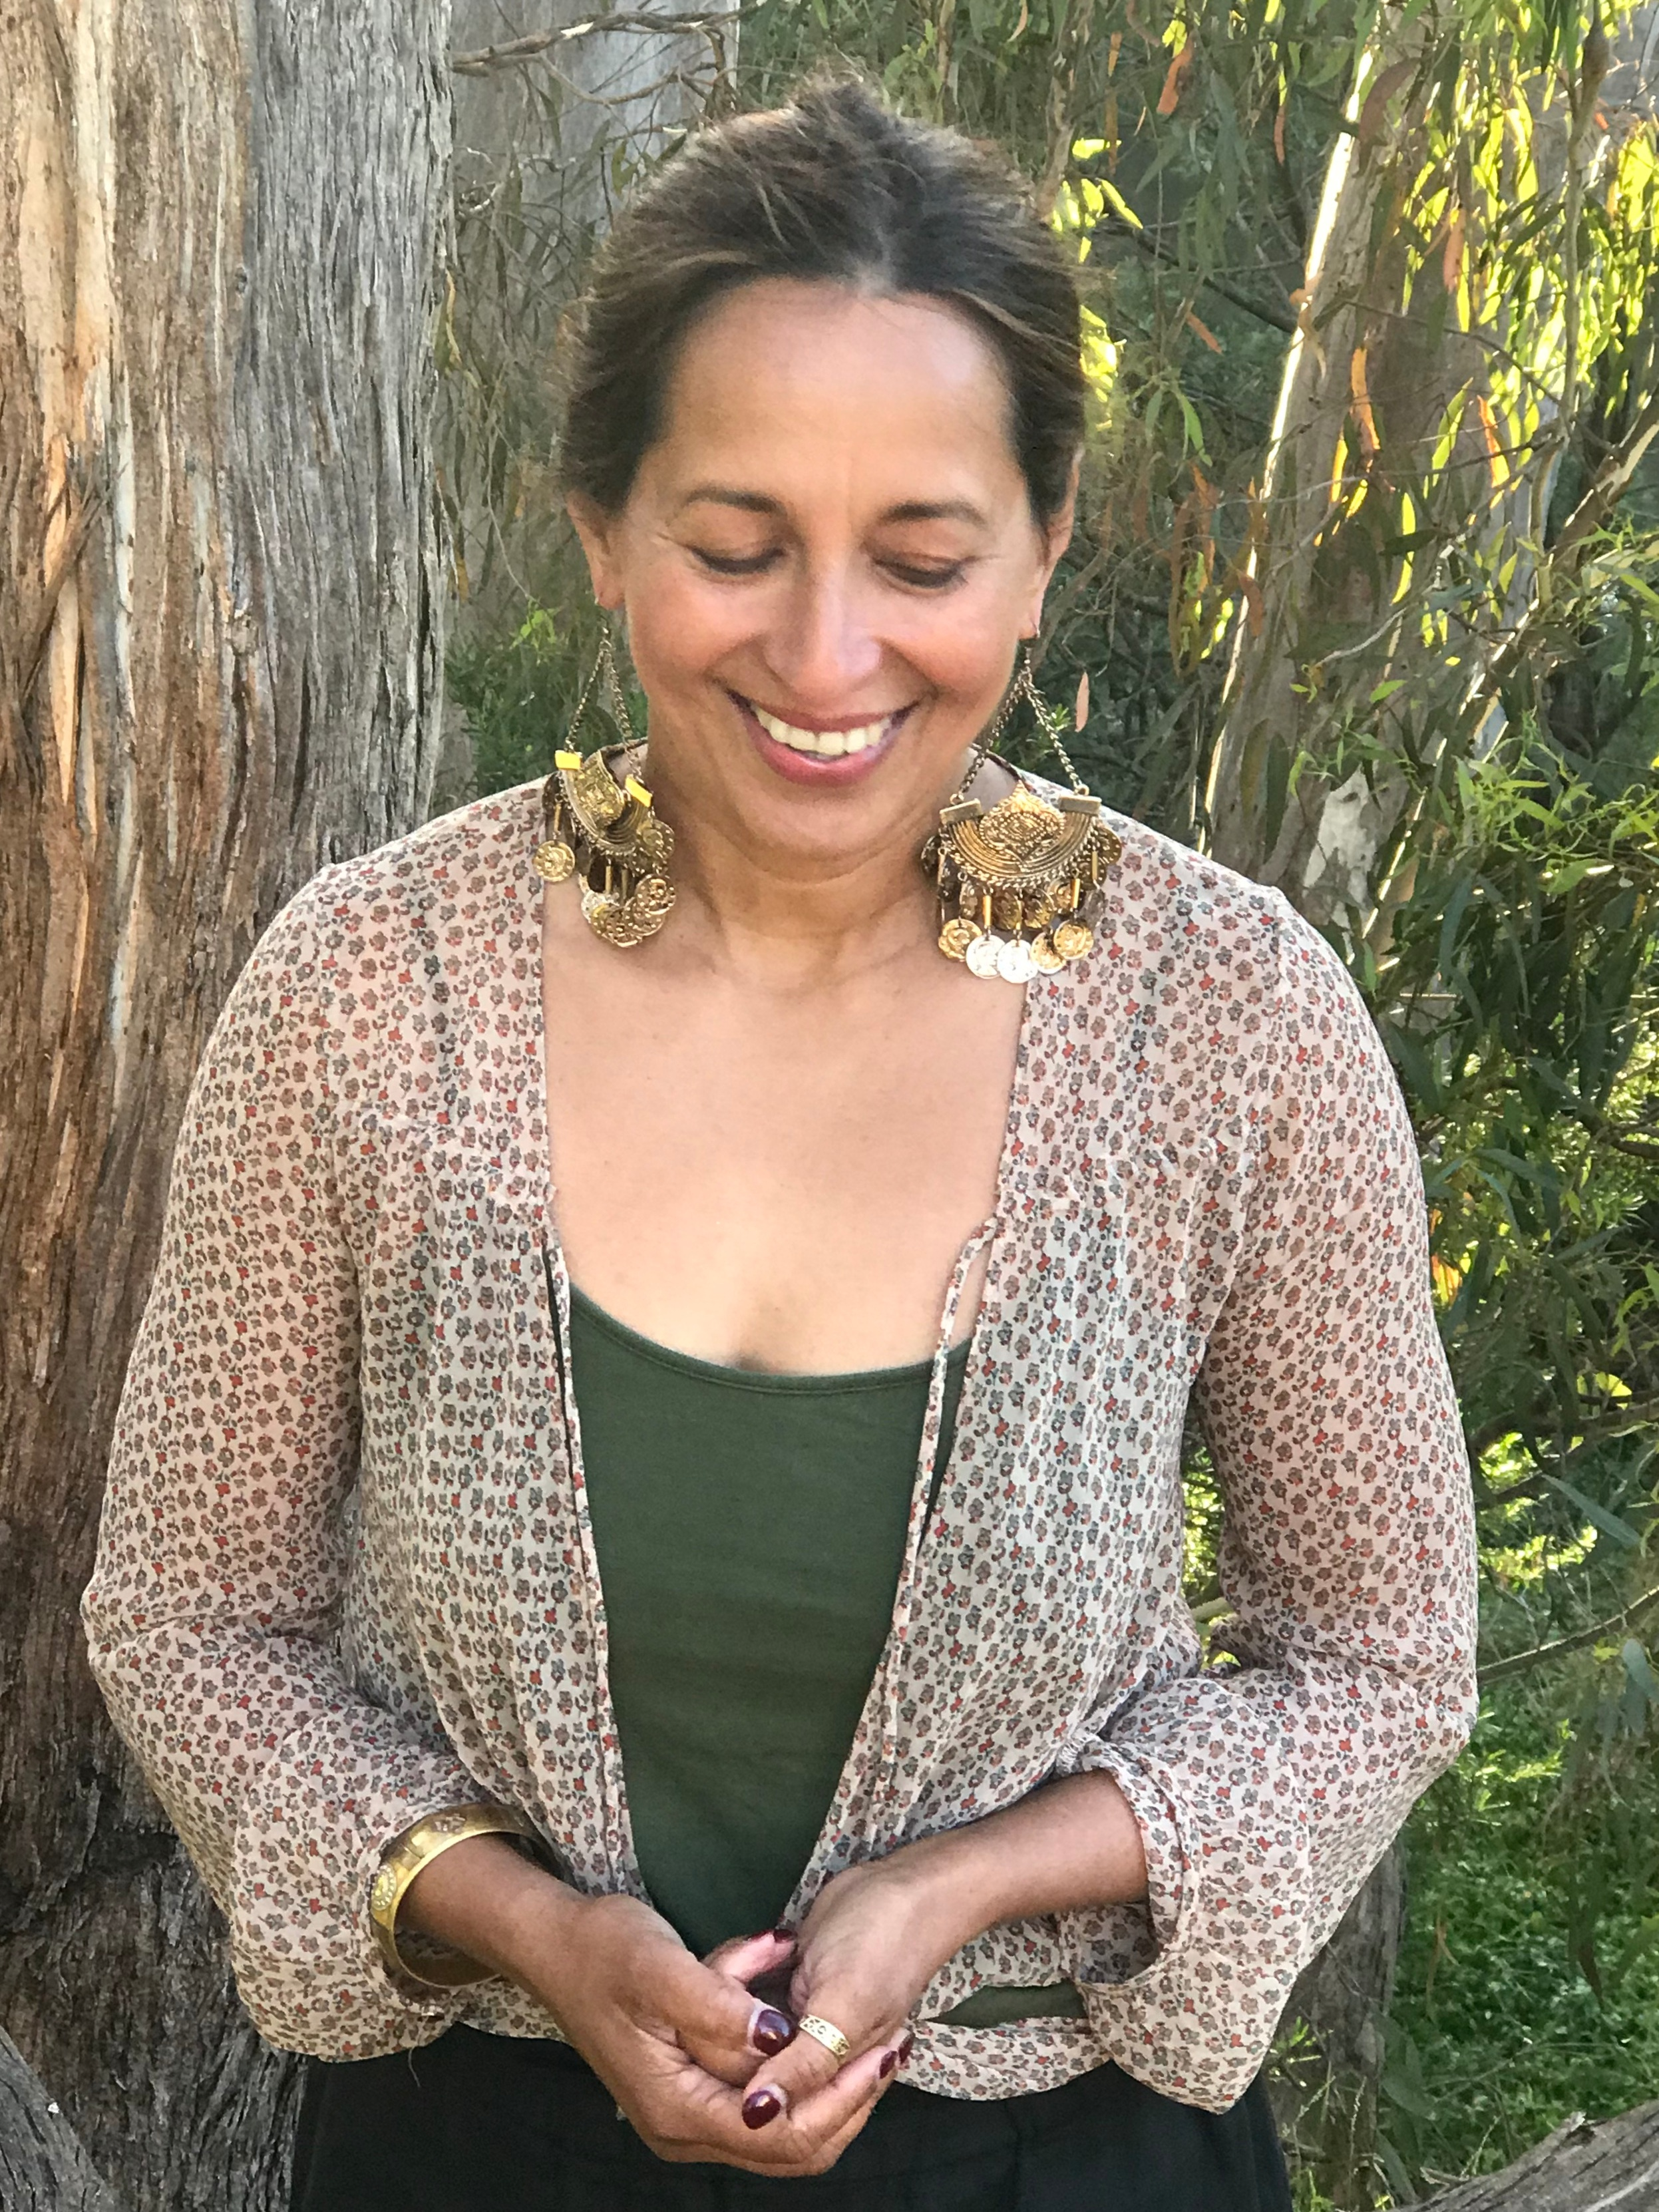 AVRIL BASTIANSZ - Teacher & Coach of Spiritual and Holistic Well-being. Born in Sri Lanka. Creator of Become Y O U, a program supporting women on their path of Self-discovery through Yoga, Meditation, Nutrition, Ayurveda and experiential journeys.